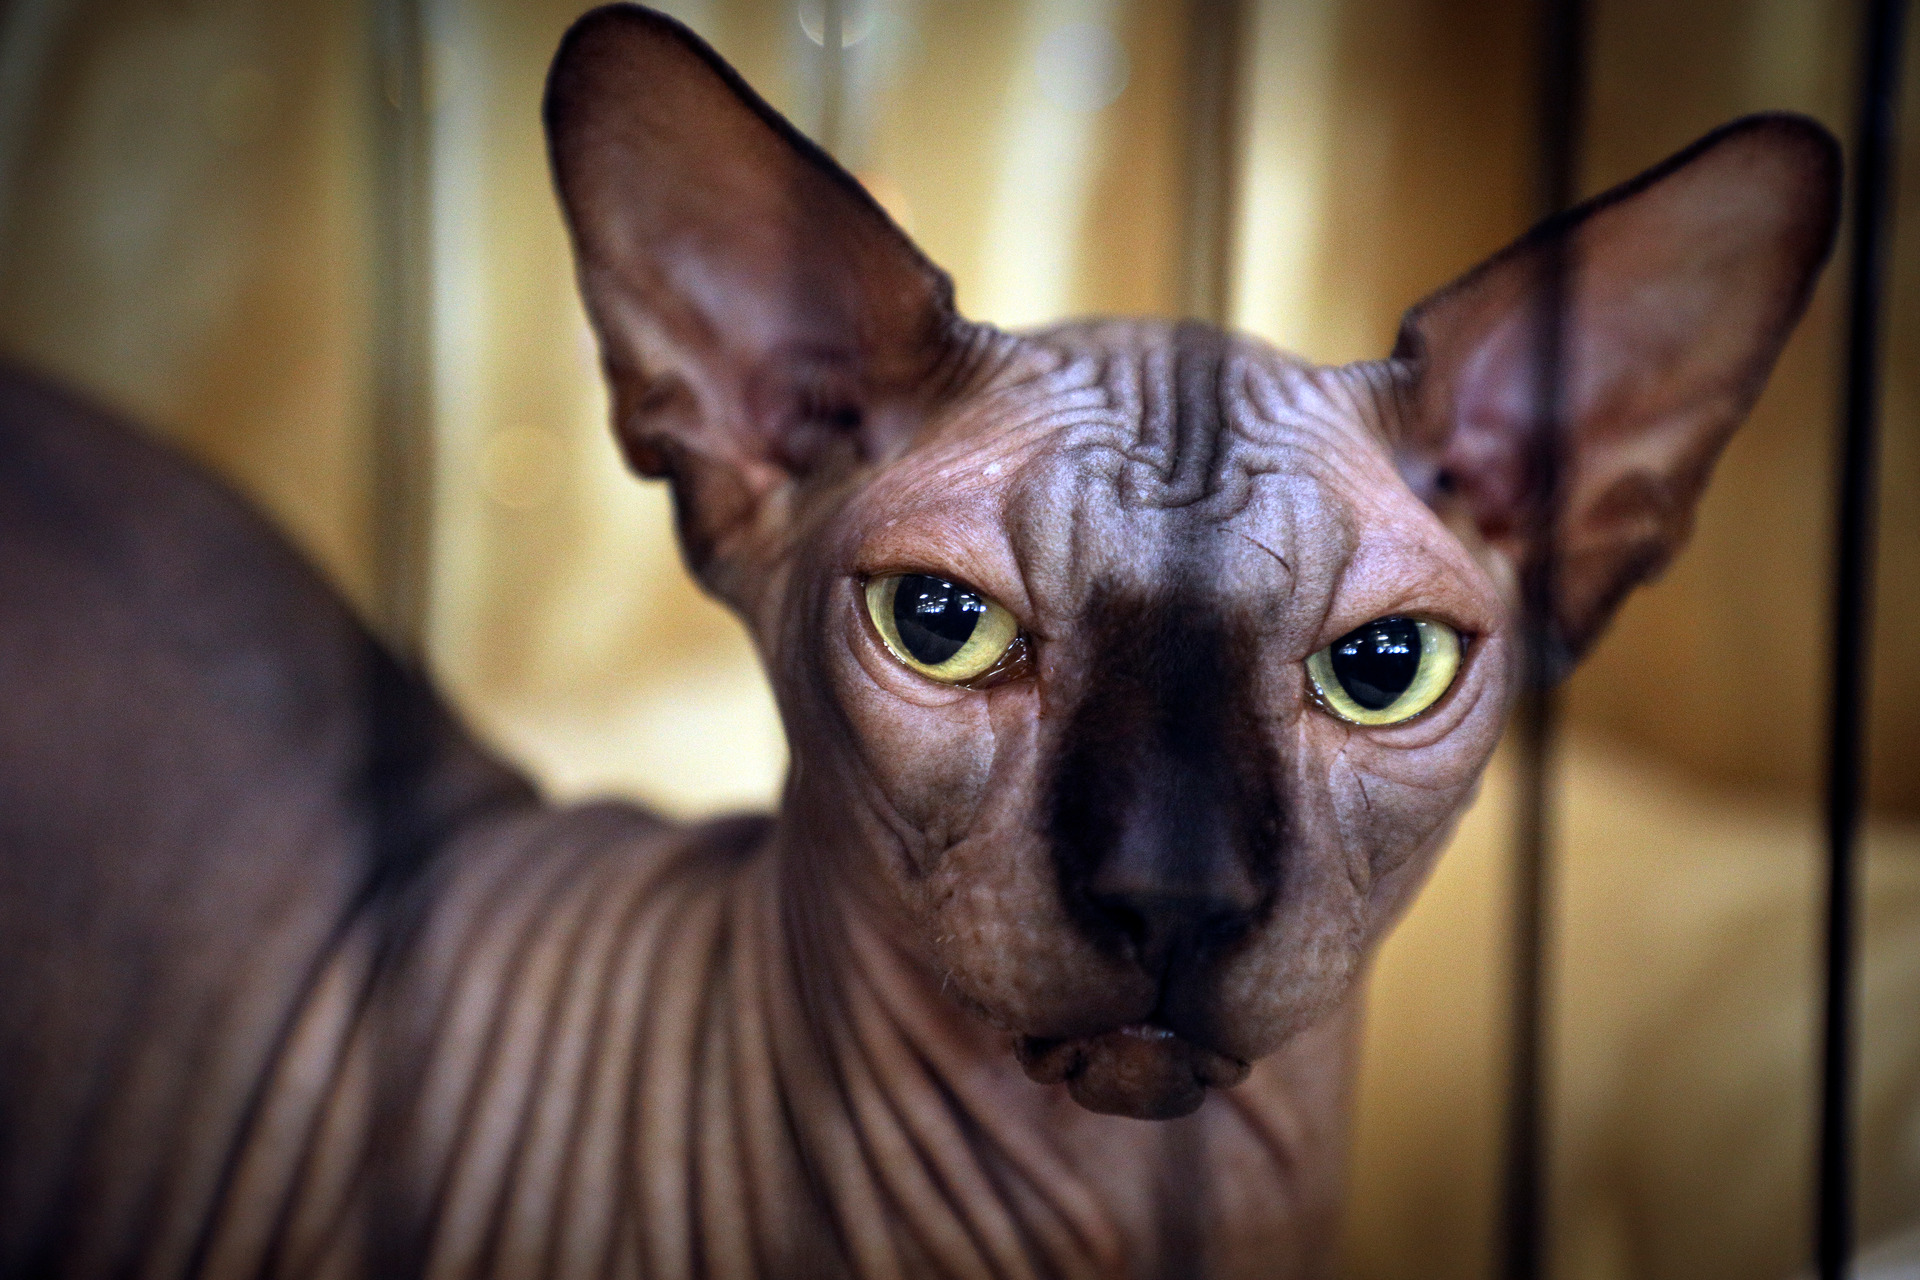 'Look how skinny he is!' – Meet the stars of a national cat show